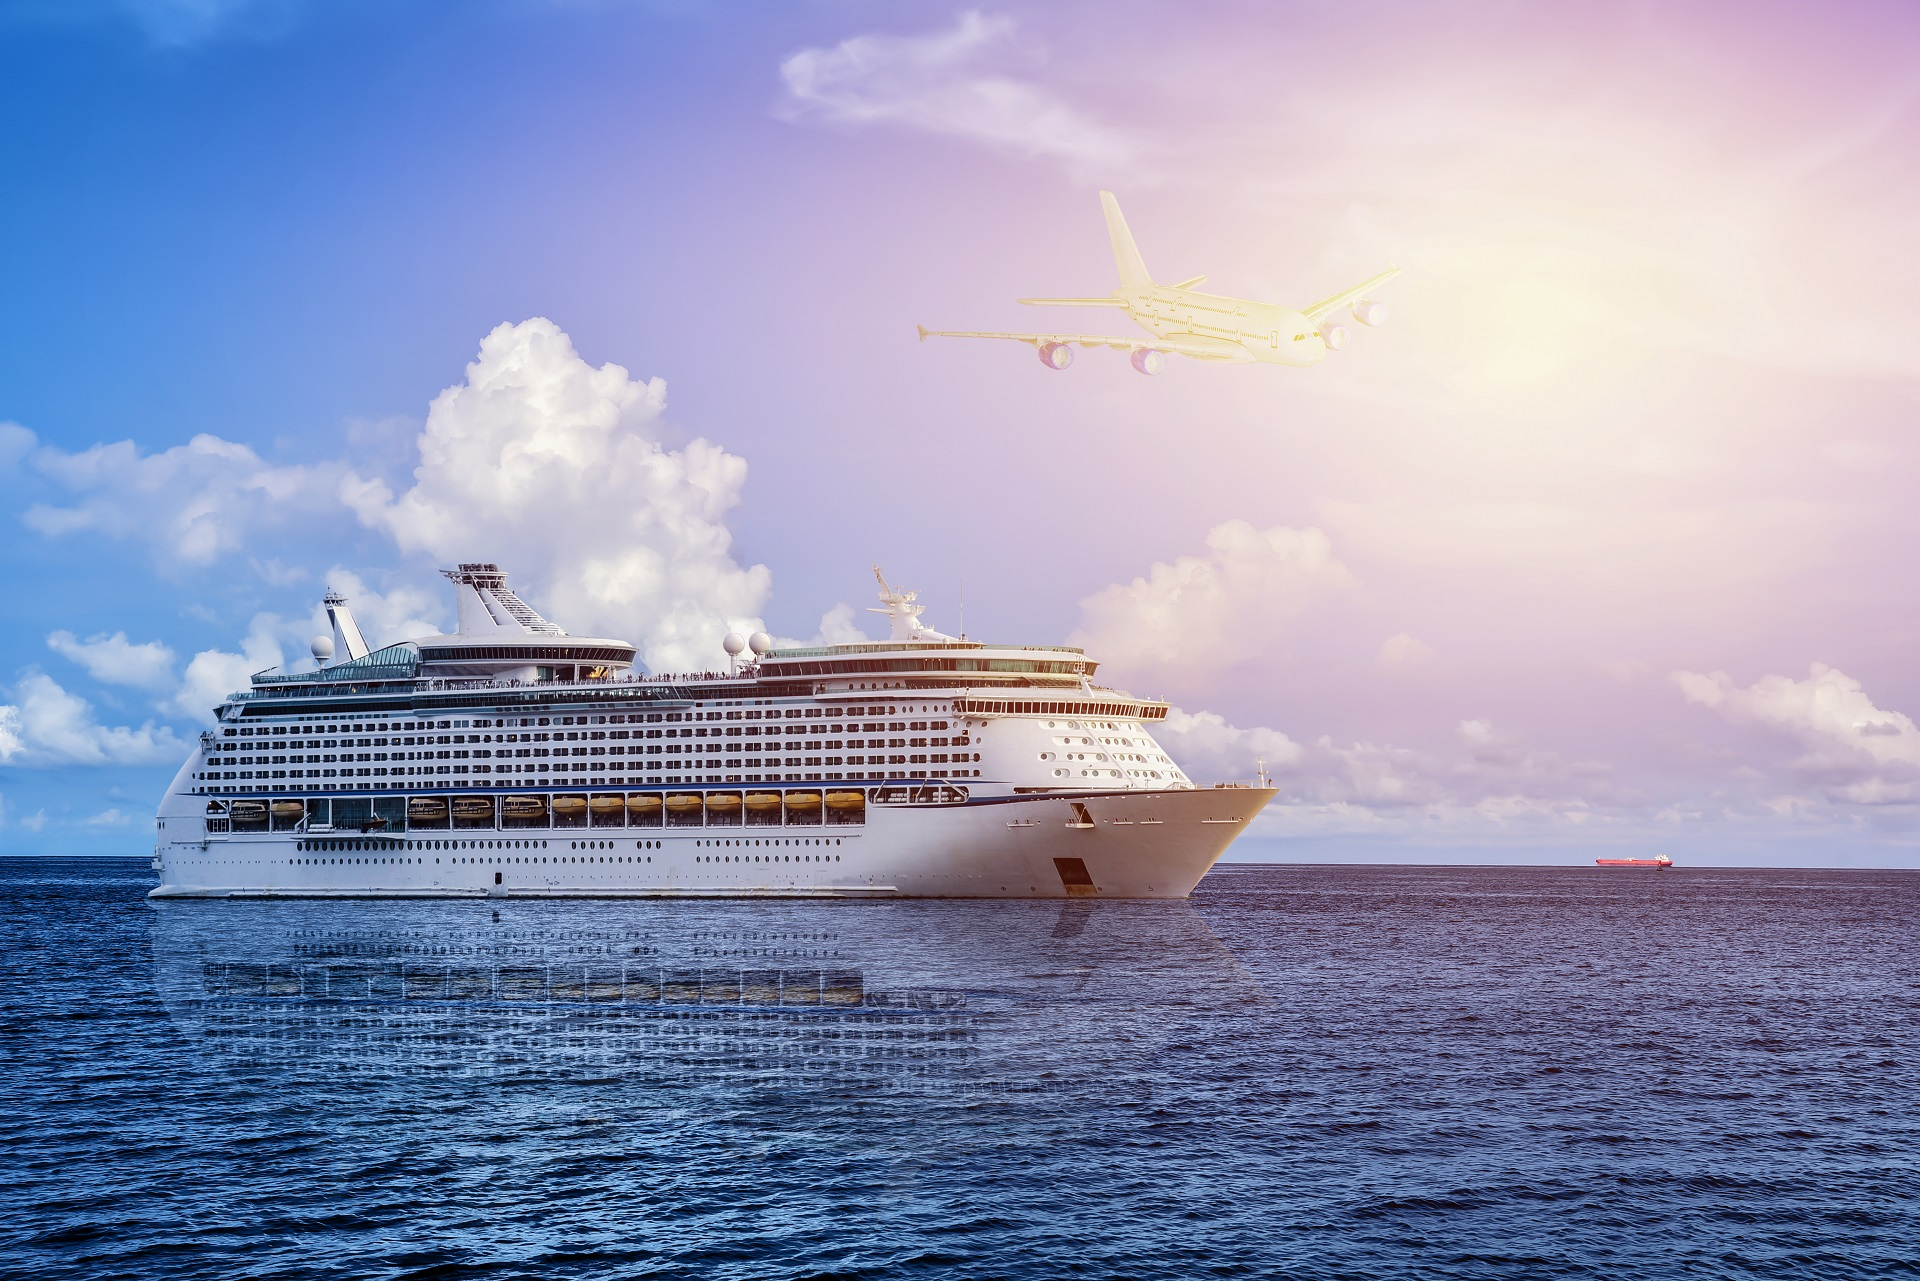 Tips to help you have a good time on your next cruise